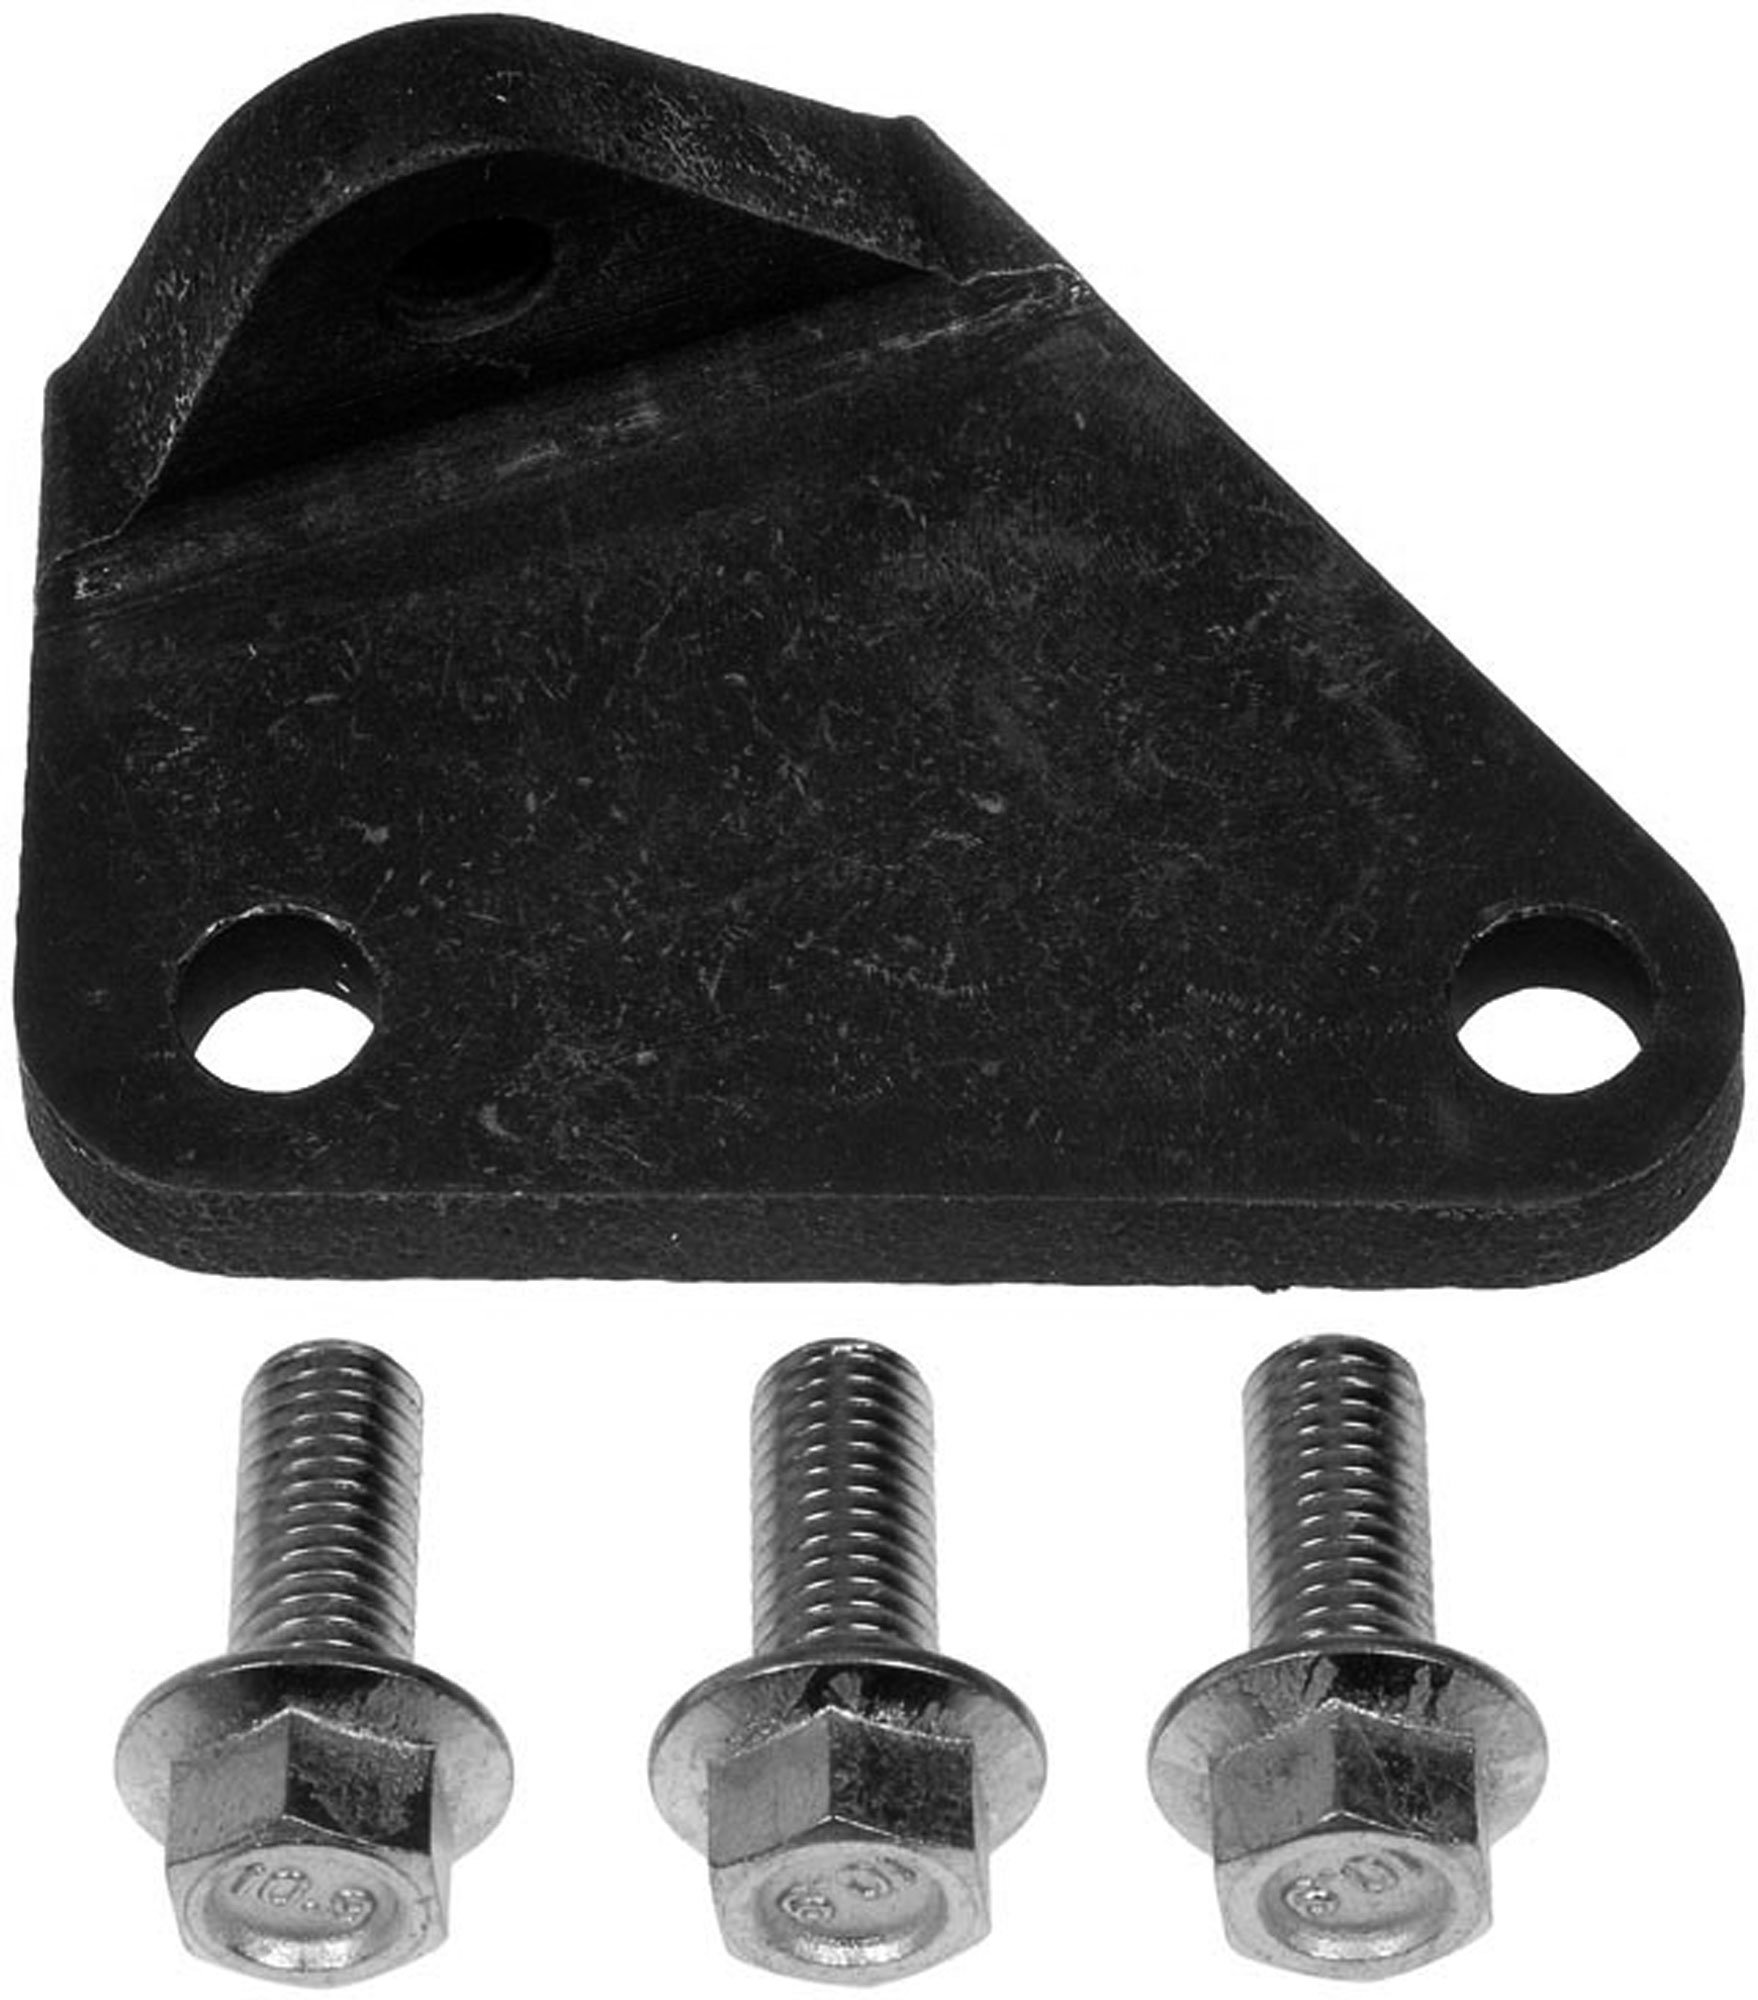 APDTY 028218 Exhaust Manifold To Cylinder Head Leak Repair Clamp Fits Front Right or Rear Left On 4.8L 5.3L 6.0L Engine On Escalade Avalanche Silverado Pickup Tahoe Express Van Denali Sierra Pickup Savana Yukon Hummer H2 (See APDTY-028253 For Other Side) by APDTY